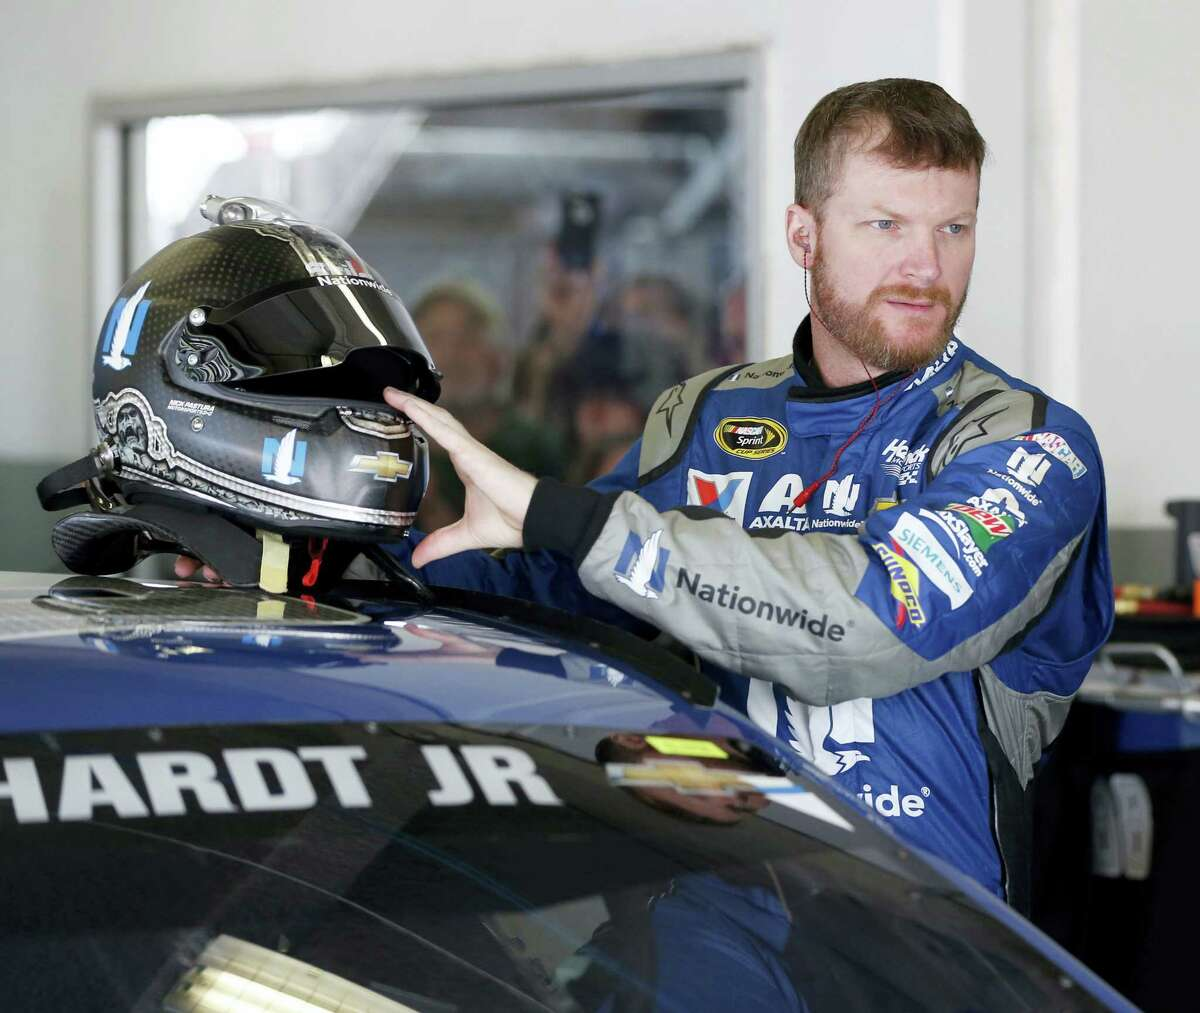 Dale Earnhardt Jr prepares to climb into his car during practice on Friday for Sunday's Daytona 500.